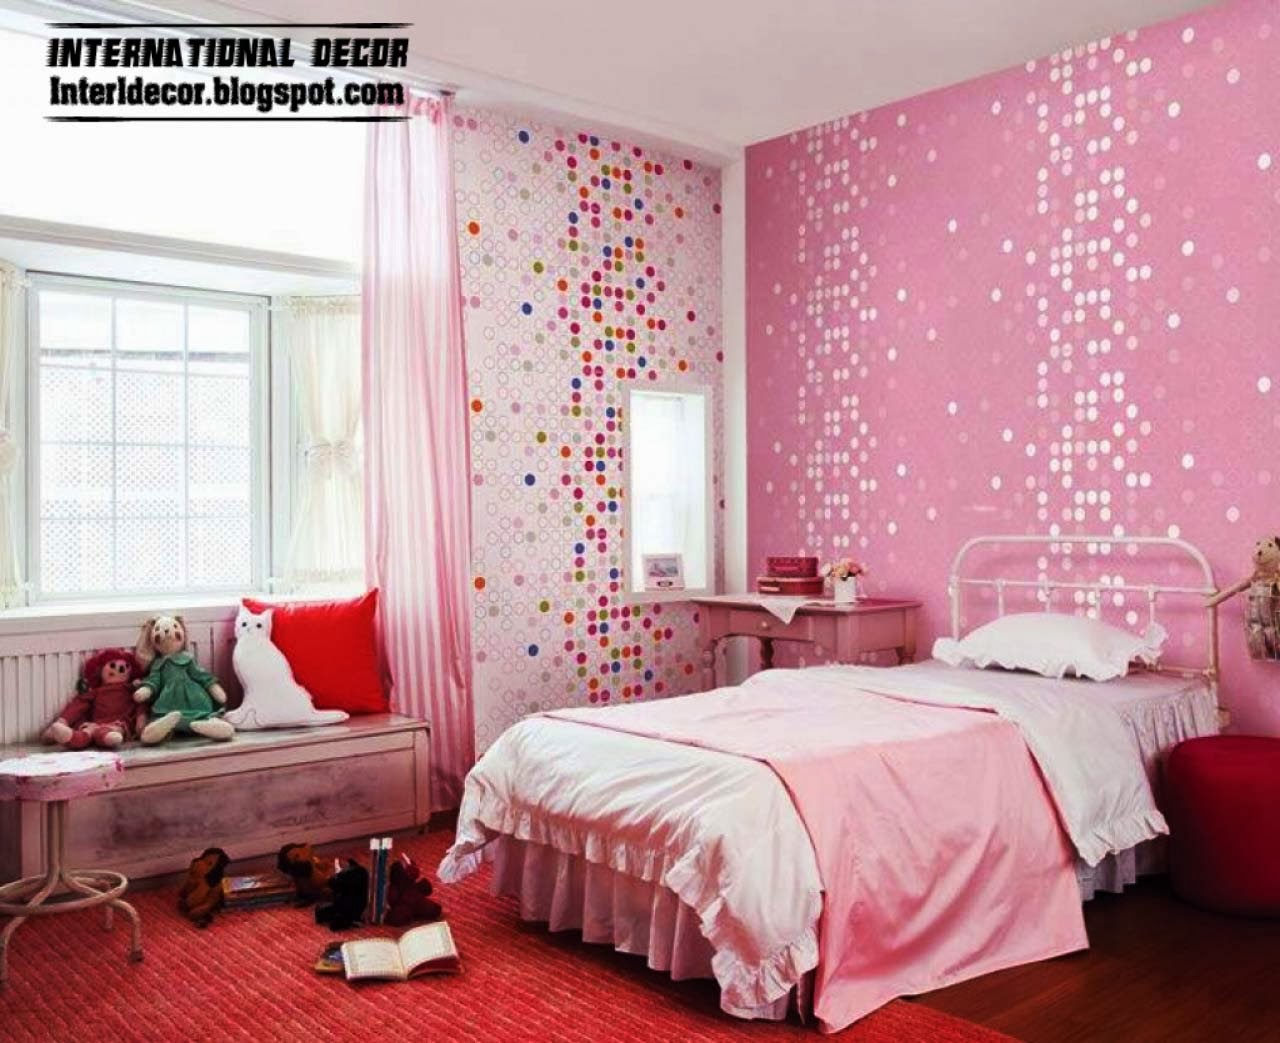 Interior design 2014 15 pink girl 39 s bedroom 2014 for Bedroom for girl interior design